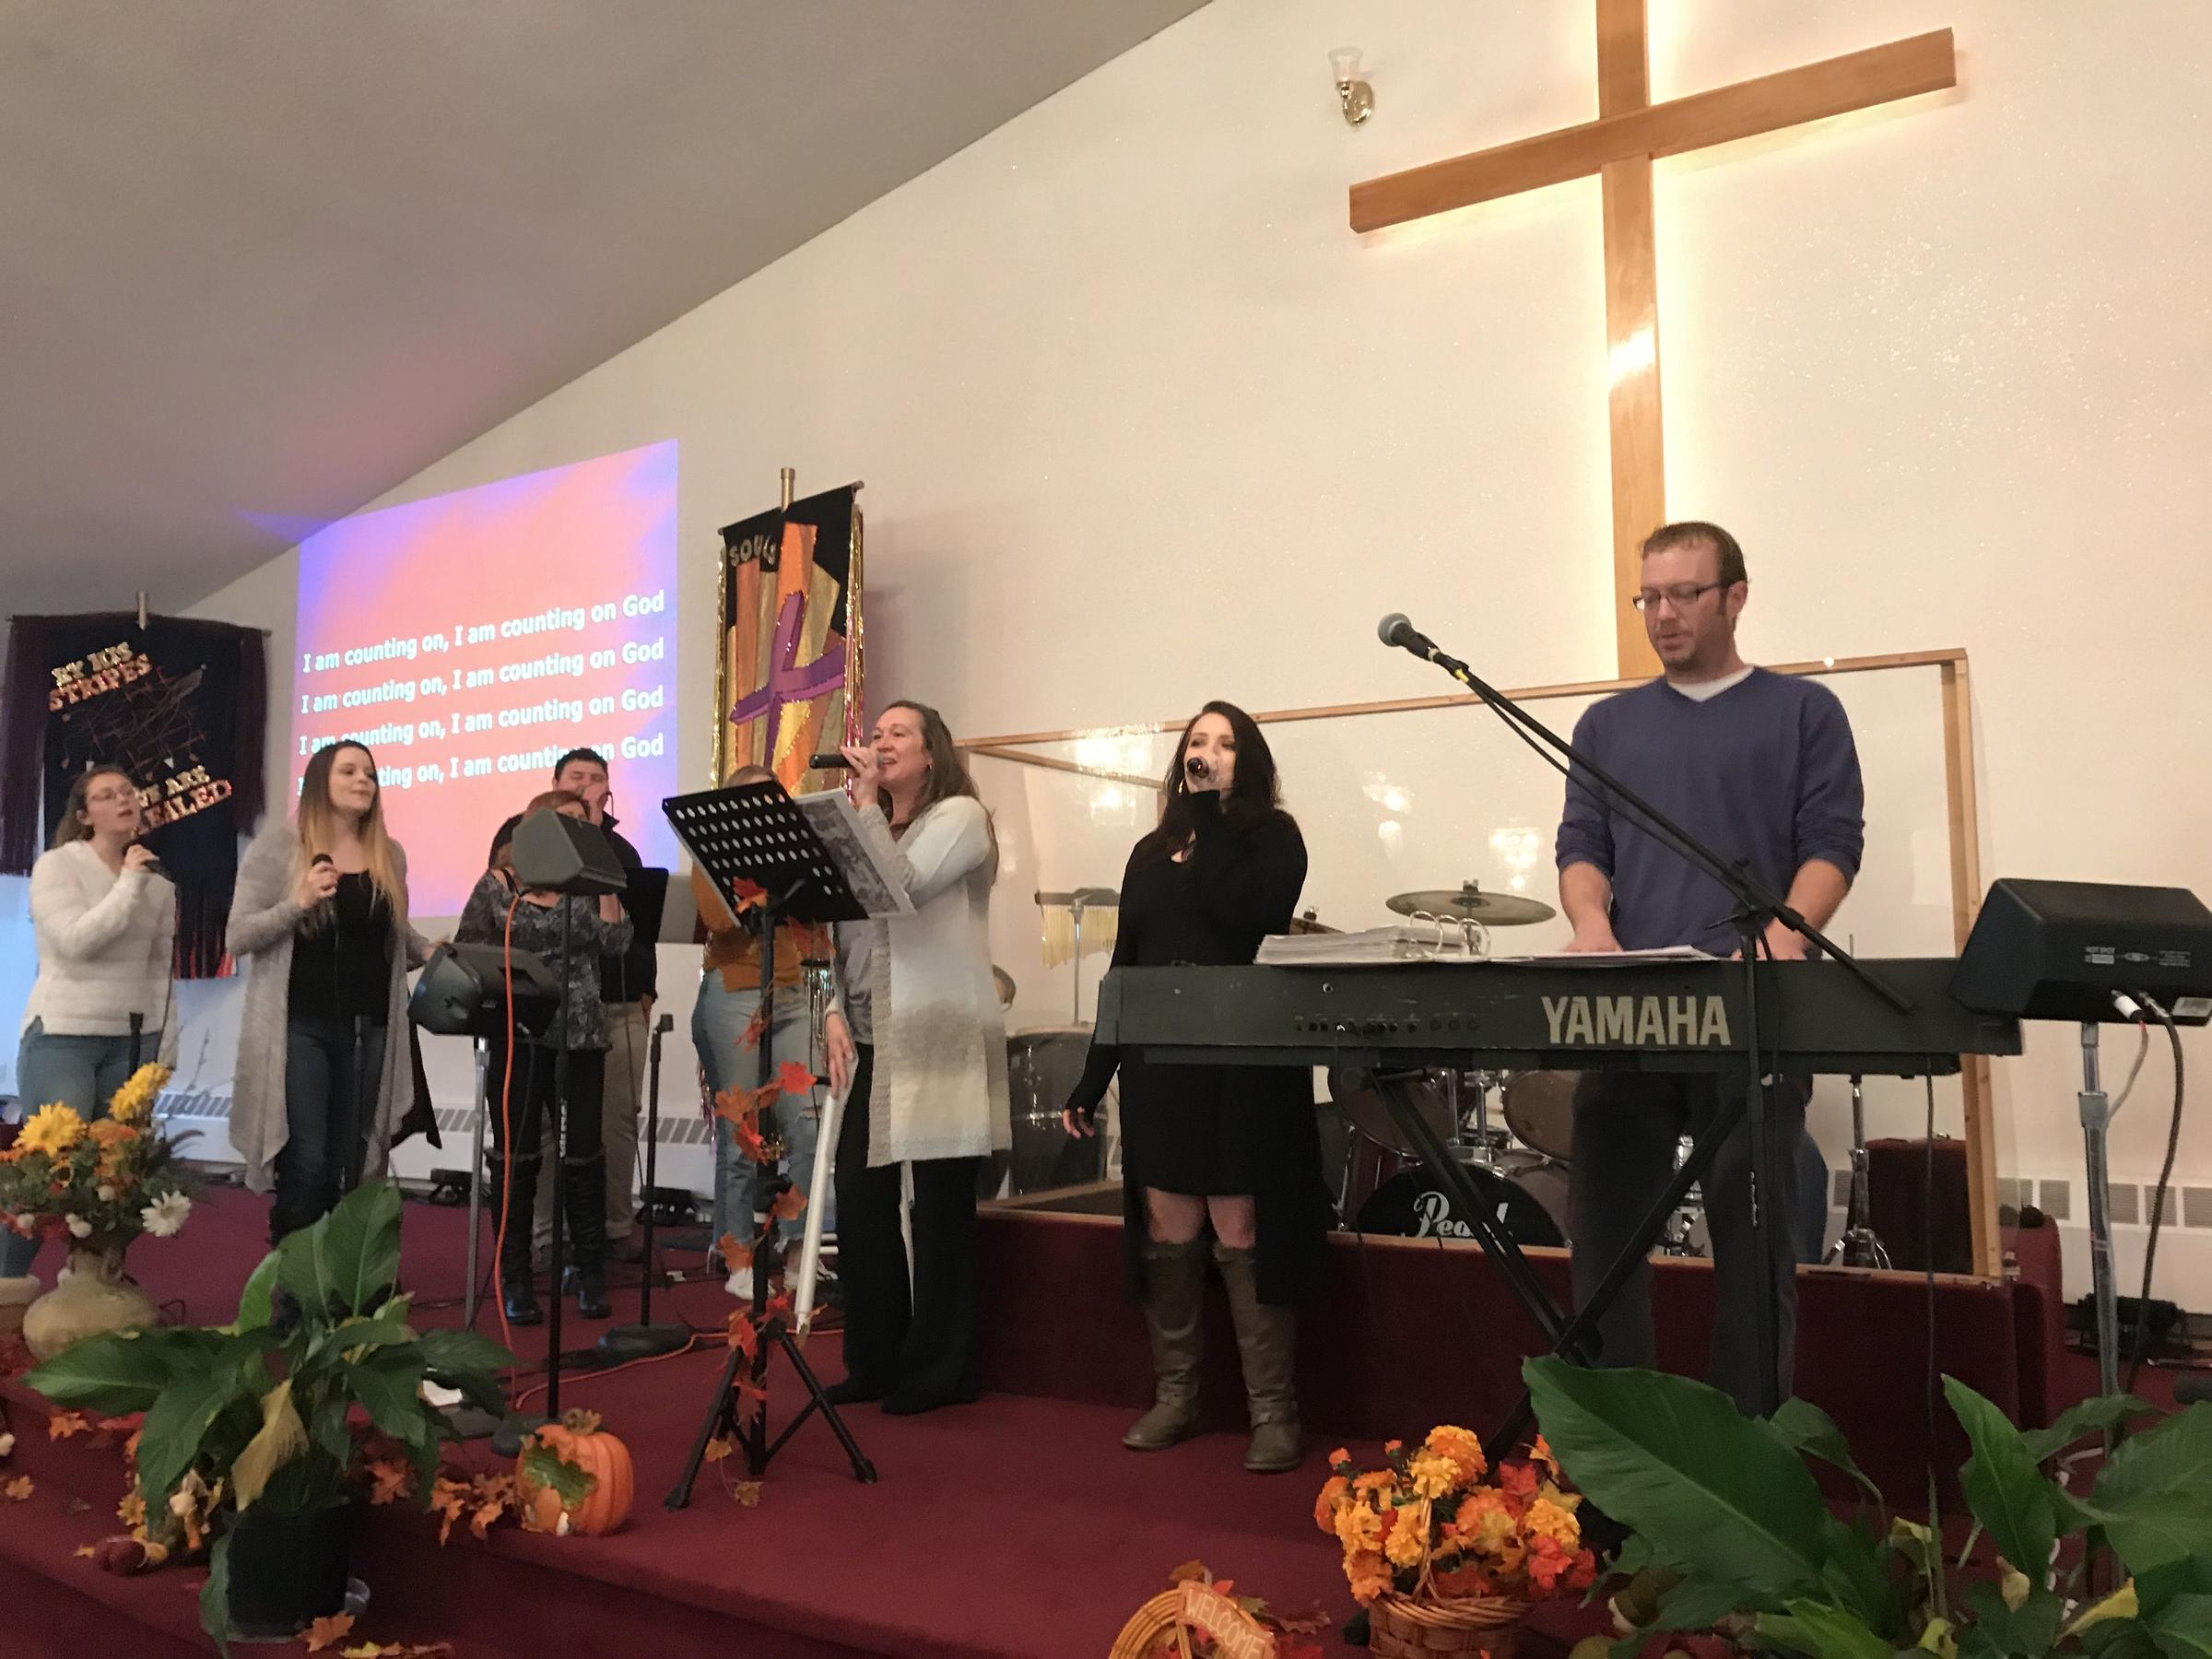 To ward off mass shooters, Oswego County church encourages